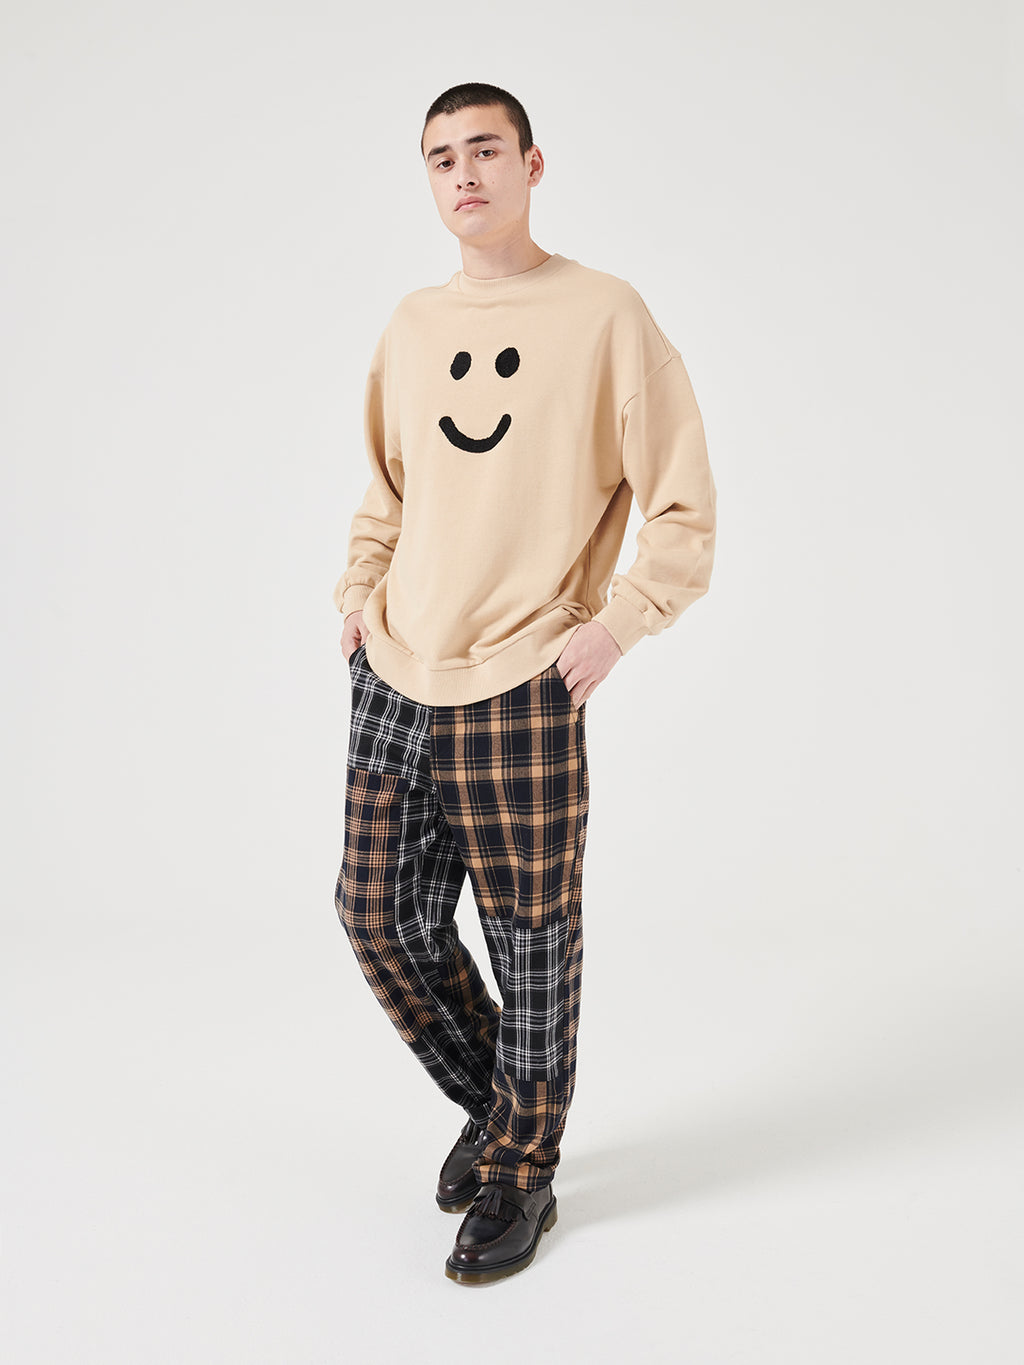 Lazy Oaf Mood Unisex Crew Neck Sweatshirt - Beige